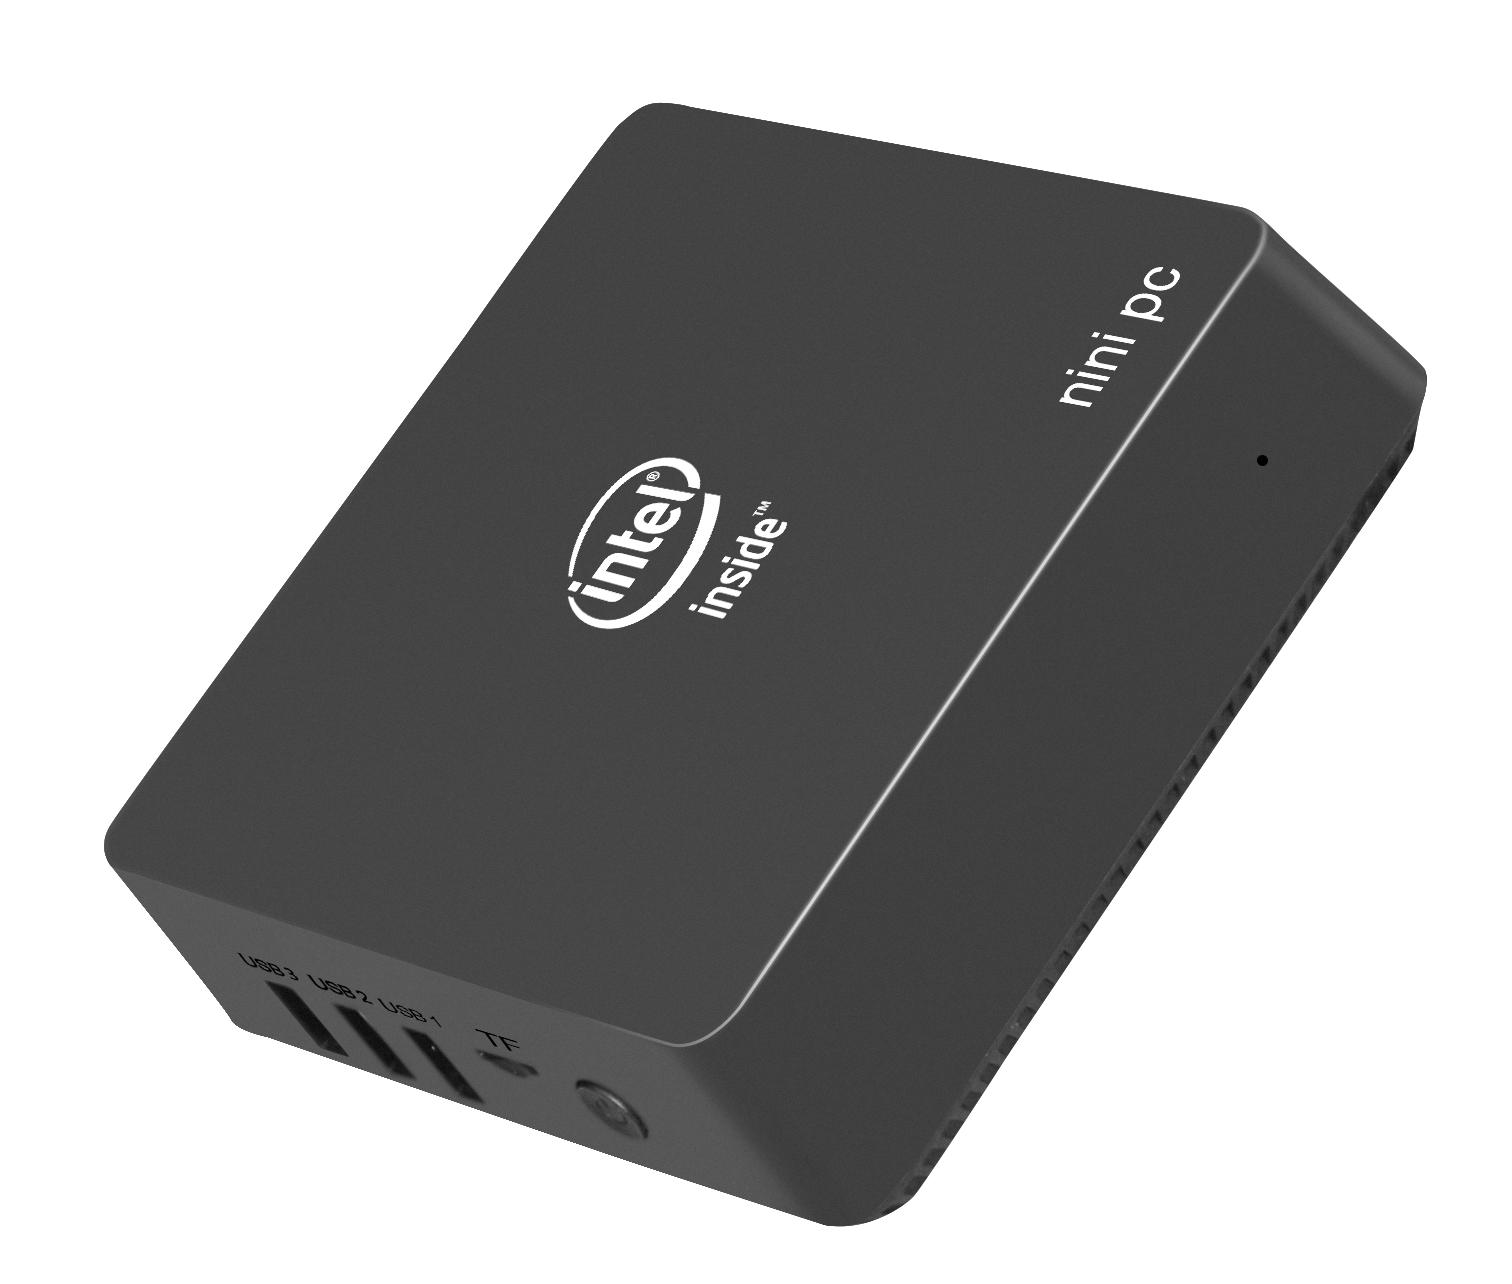 AK5 intel mini <strong>PC</strong> windows10/Linux 5G wifi 4gb/64gb support dual screen mini <strong>PC</strong>